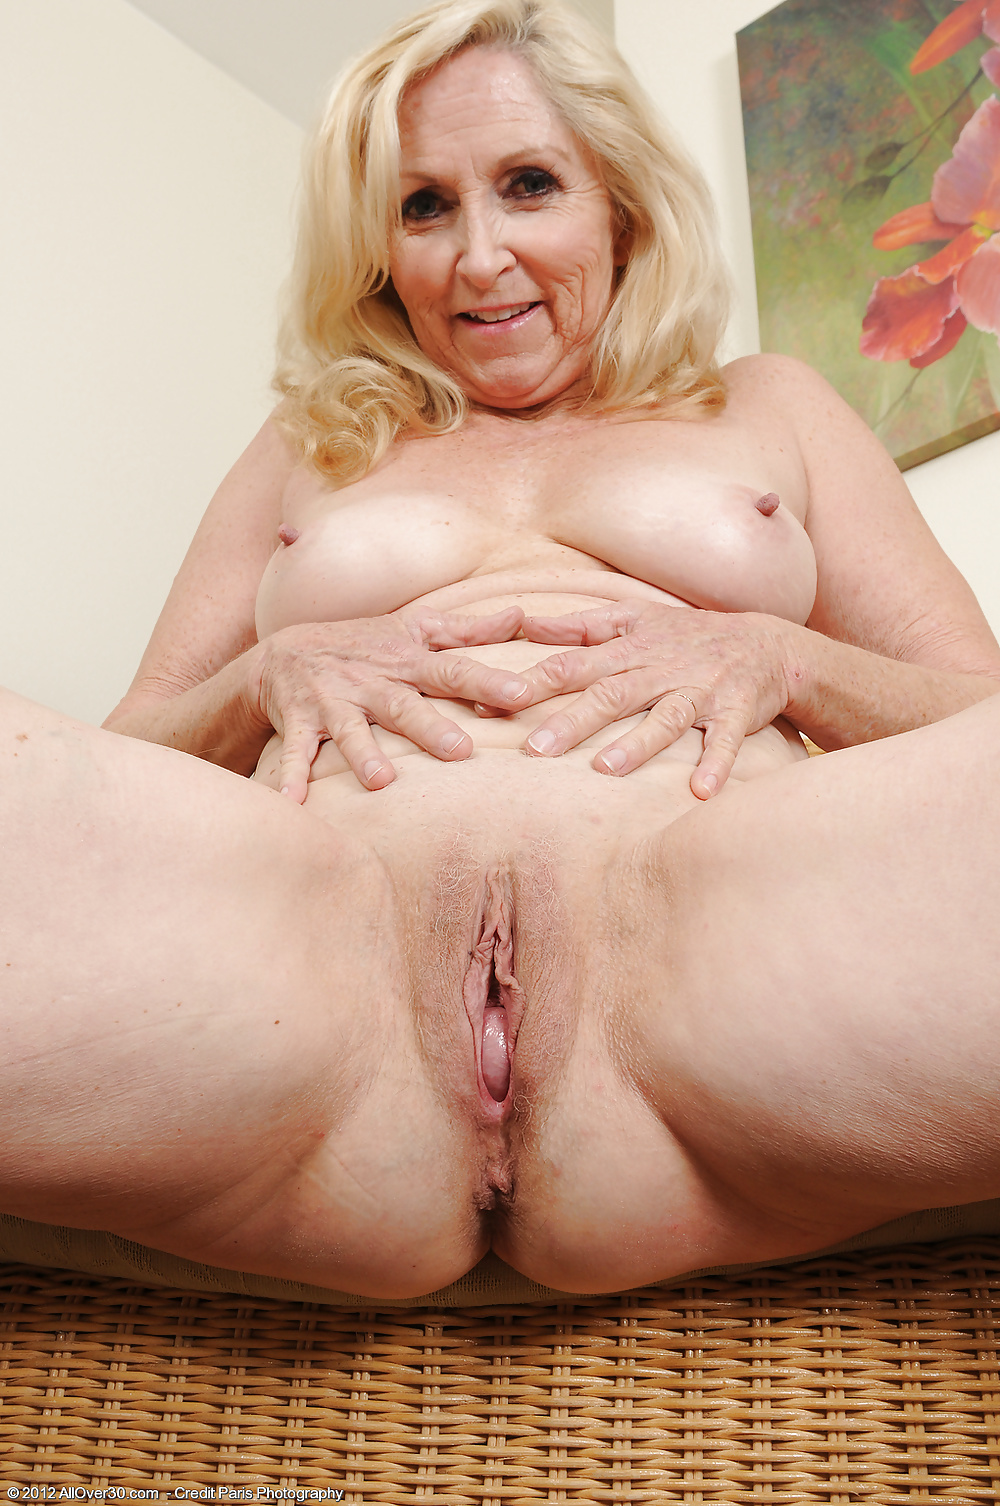 Shaved Mature Pussy - 23 Pics  Xhamster-6623